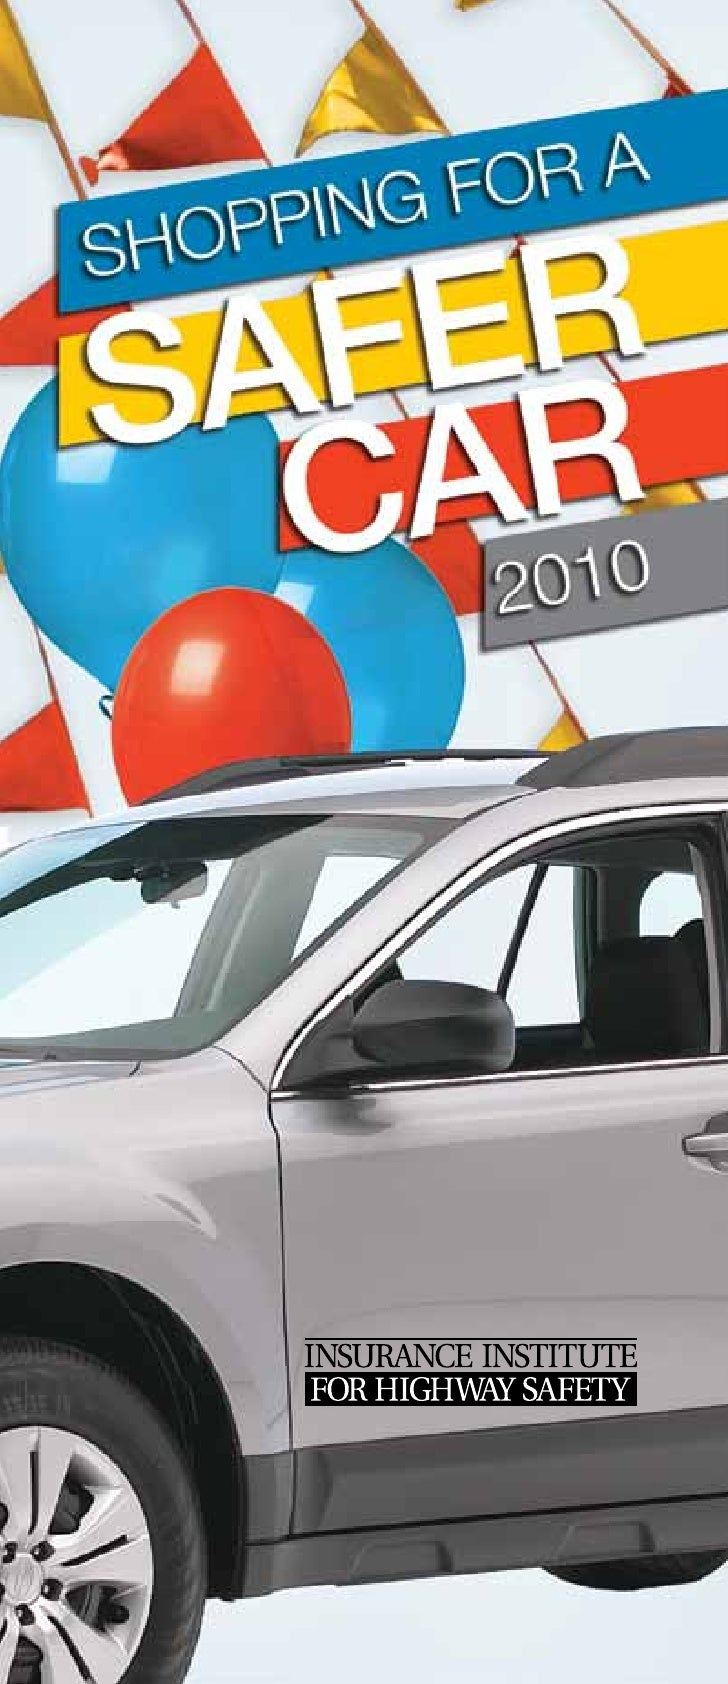 So you've decided to buy a car, minivan, SUV, or pickup. Now the question is, which one? If you factor safety into your ch...